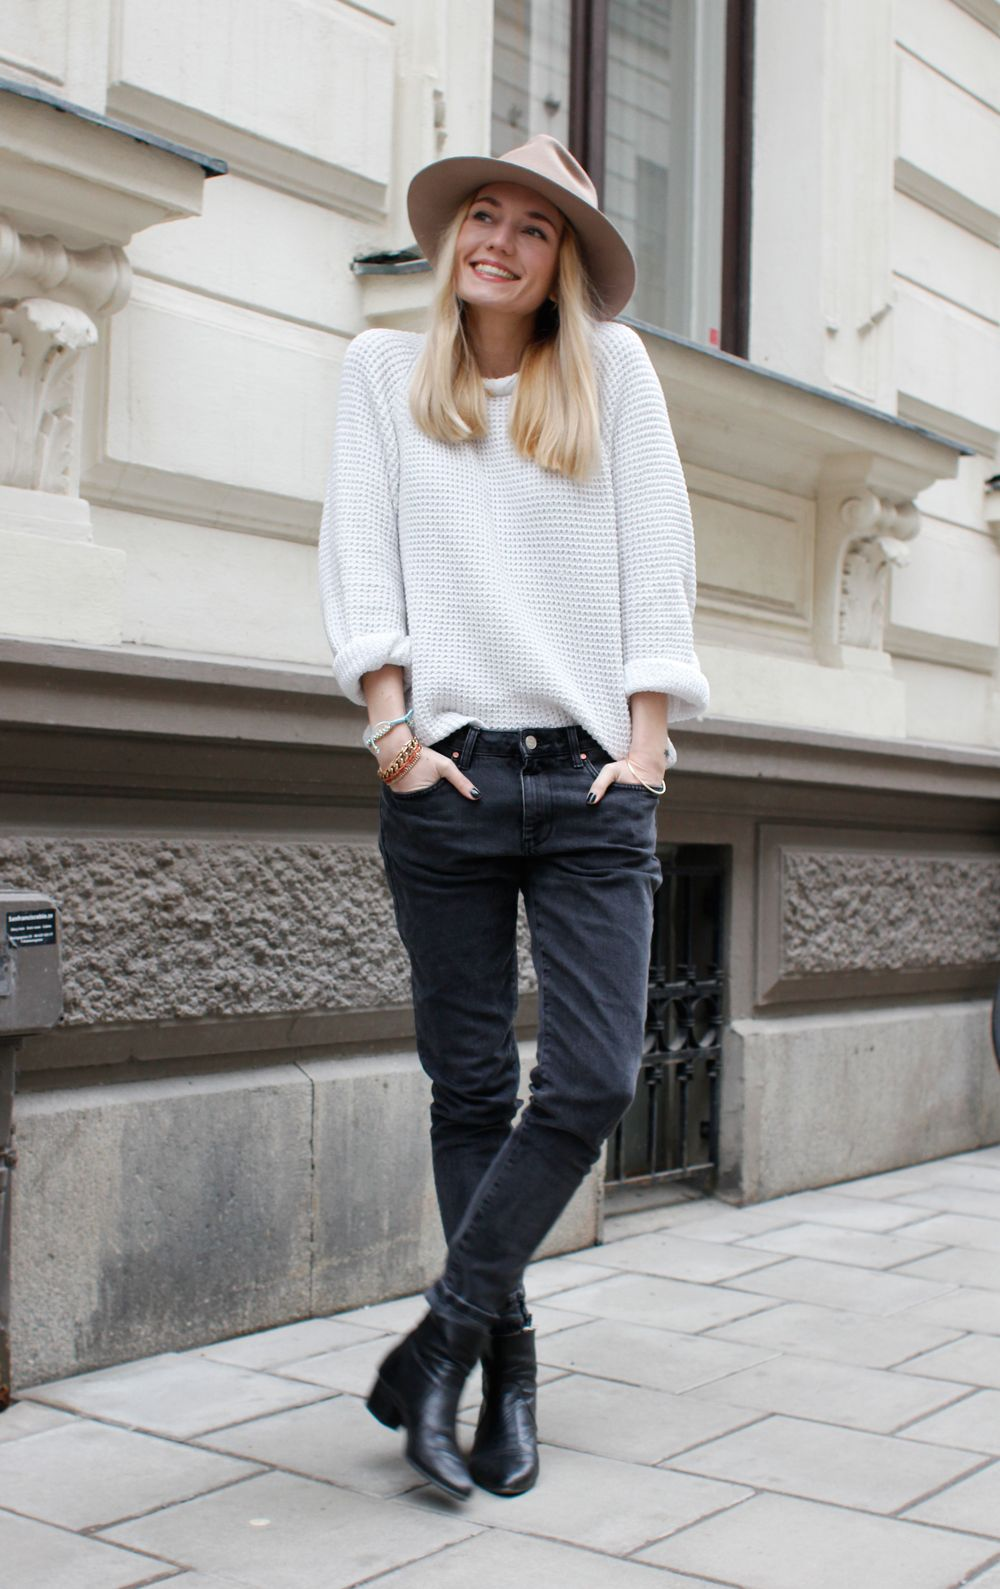 dd8ae68b268 Love this look! So effortless chick. Skinny jeans